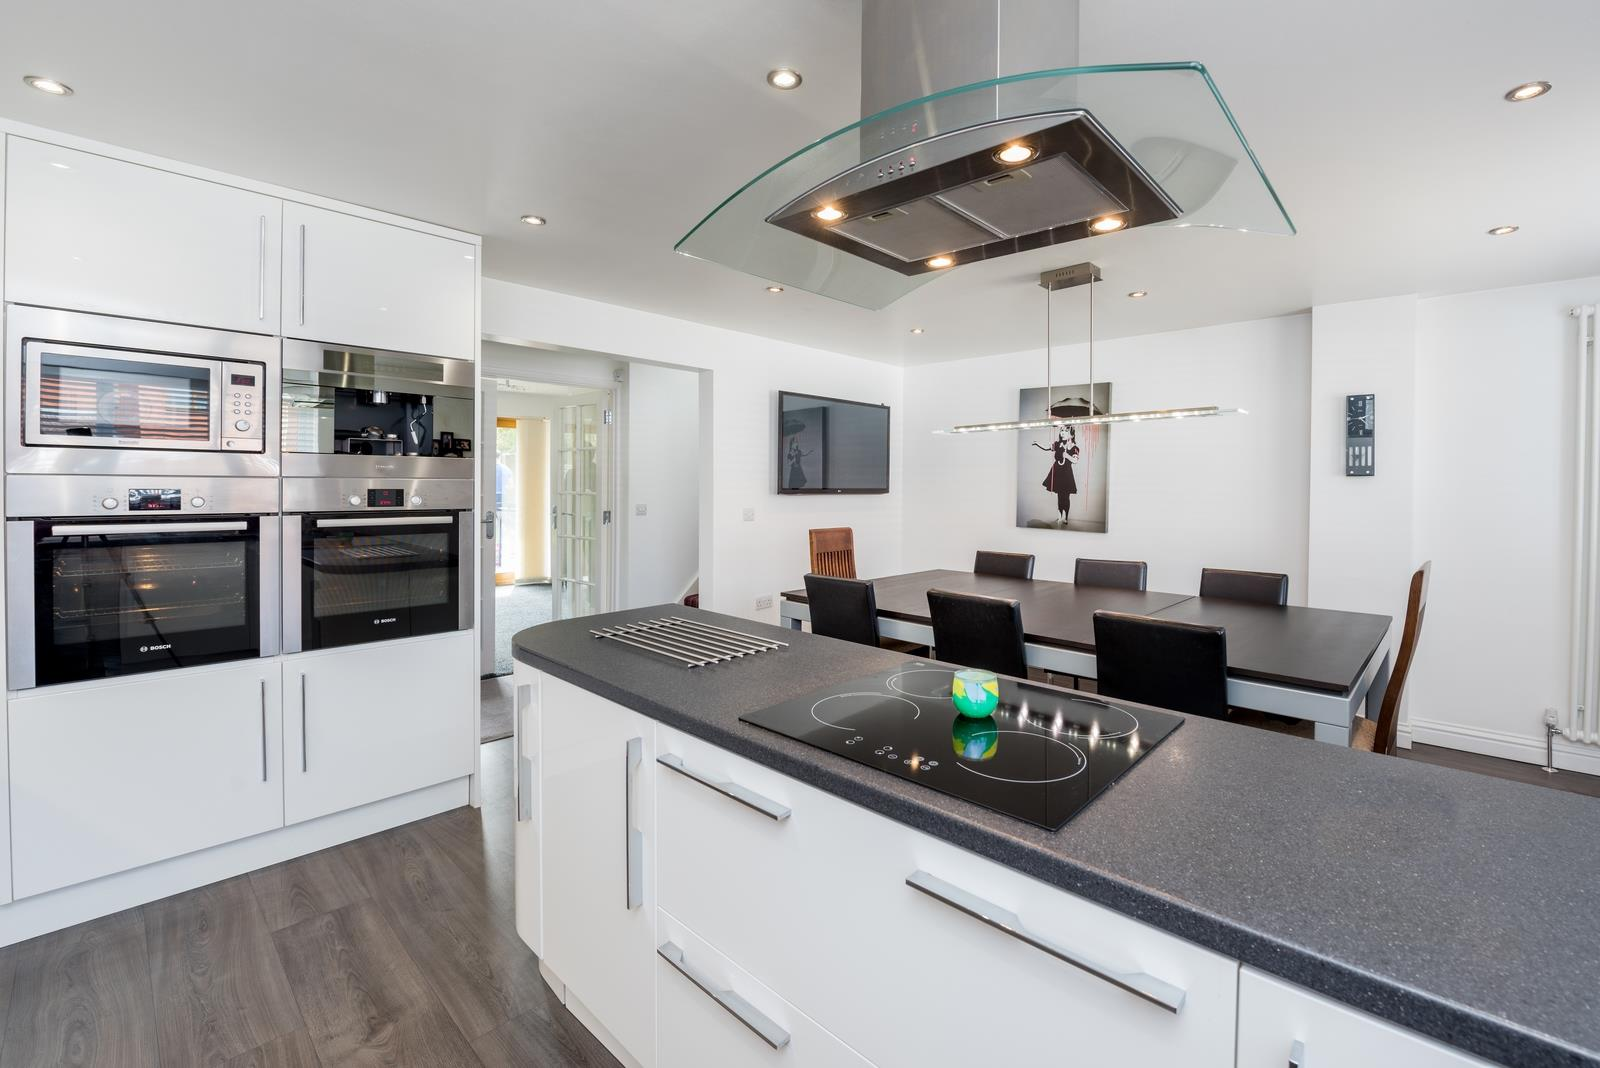 3 bed house for sale in Fallodon Way, Bristol 4